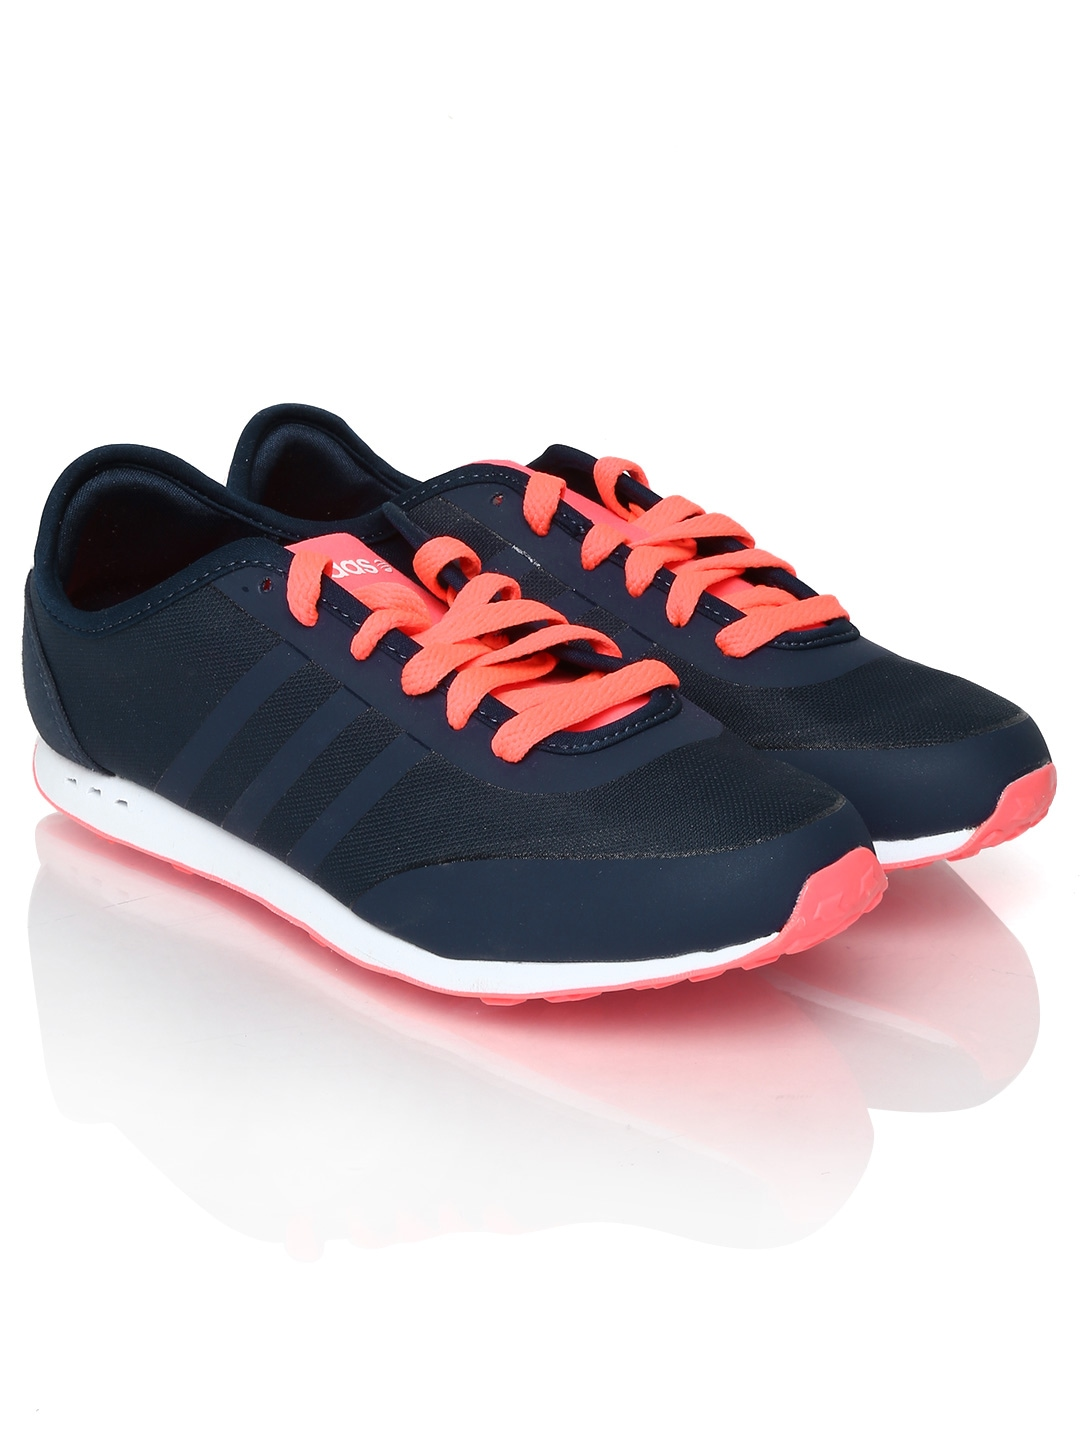 ... promo code womens adidas neo trainers what is adidas 6f98e 548b3 ... 016a142278